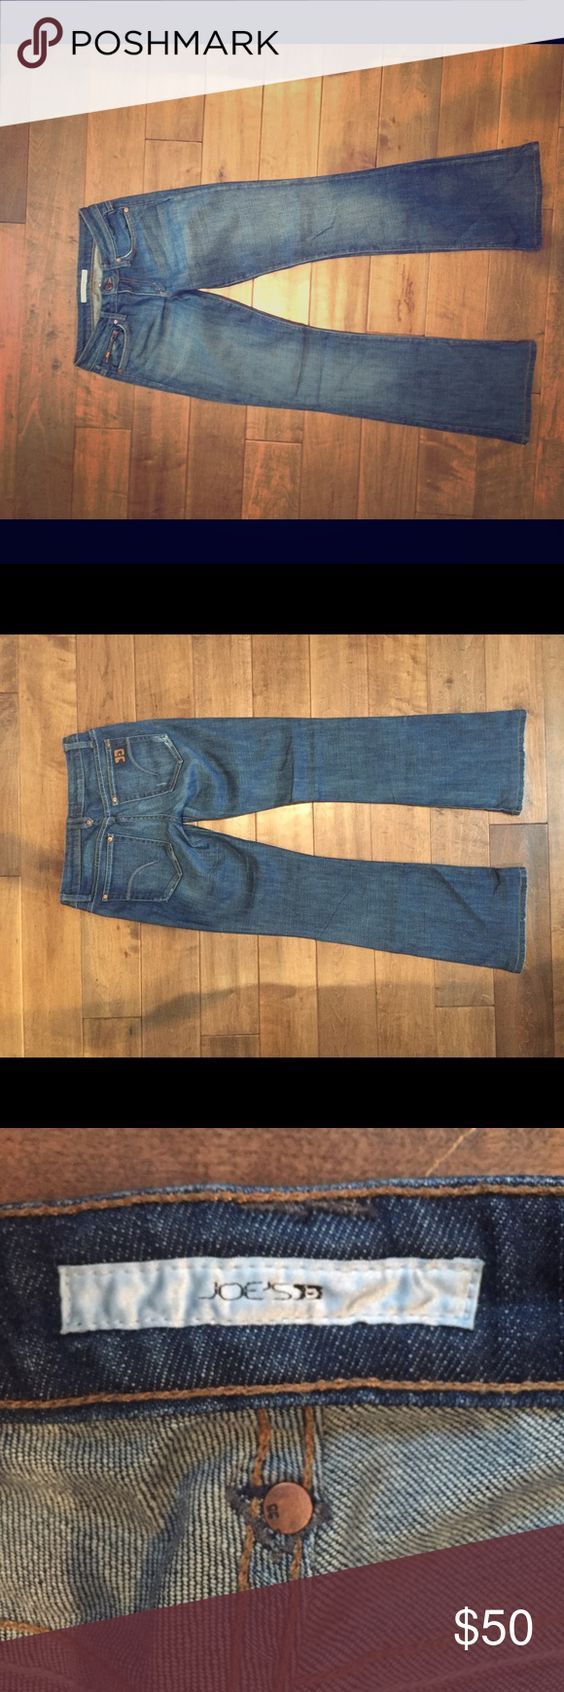 """Joe's jeans These are an old pair of jeans that have been worn numerous times but are still in good condition. I'm about 5'2"""" and the jeans touch the floor on me. The listing price online for the Honey boot it is 129.50. I do not remember what  price I bought them for. Let me know if you have any questions! Joe's Jeans Jeans Boot Cut"""